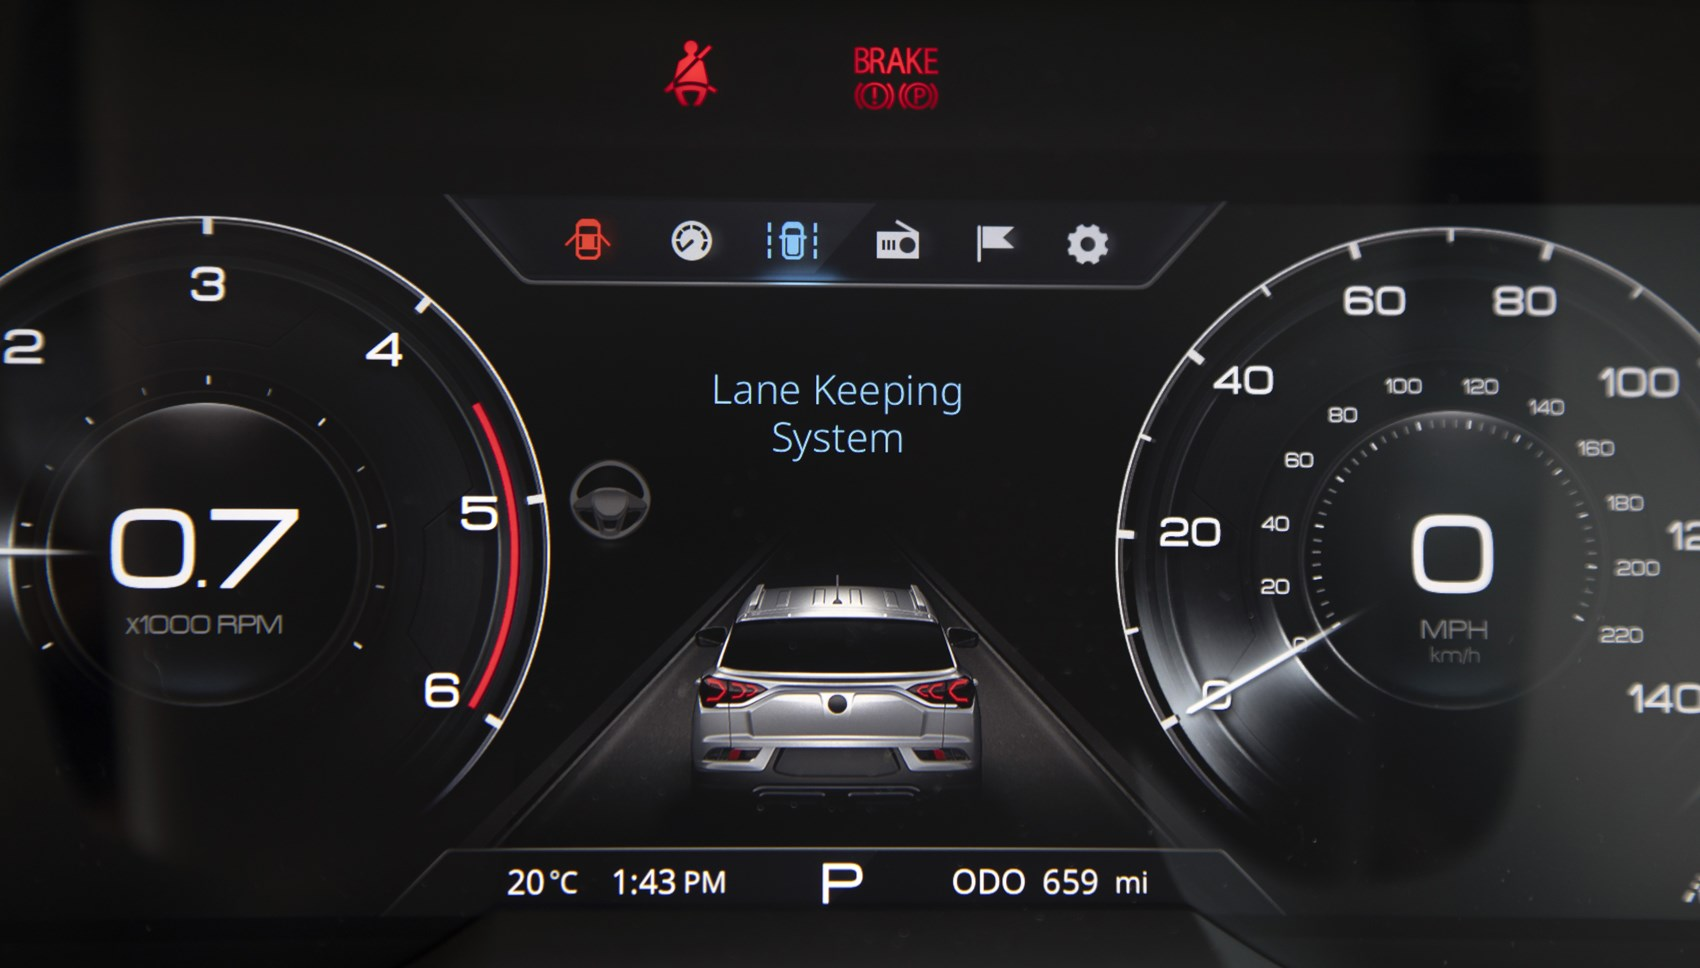 Korando instrument screen